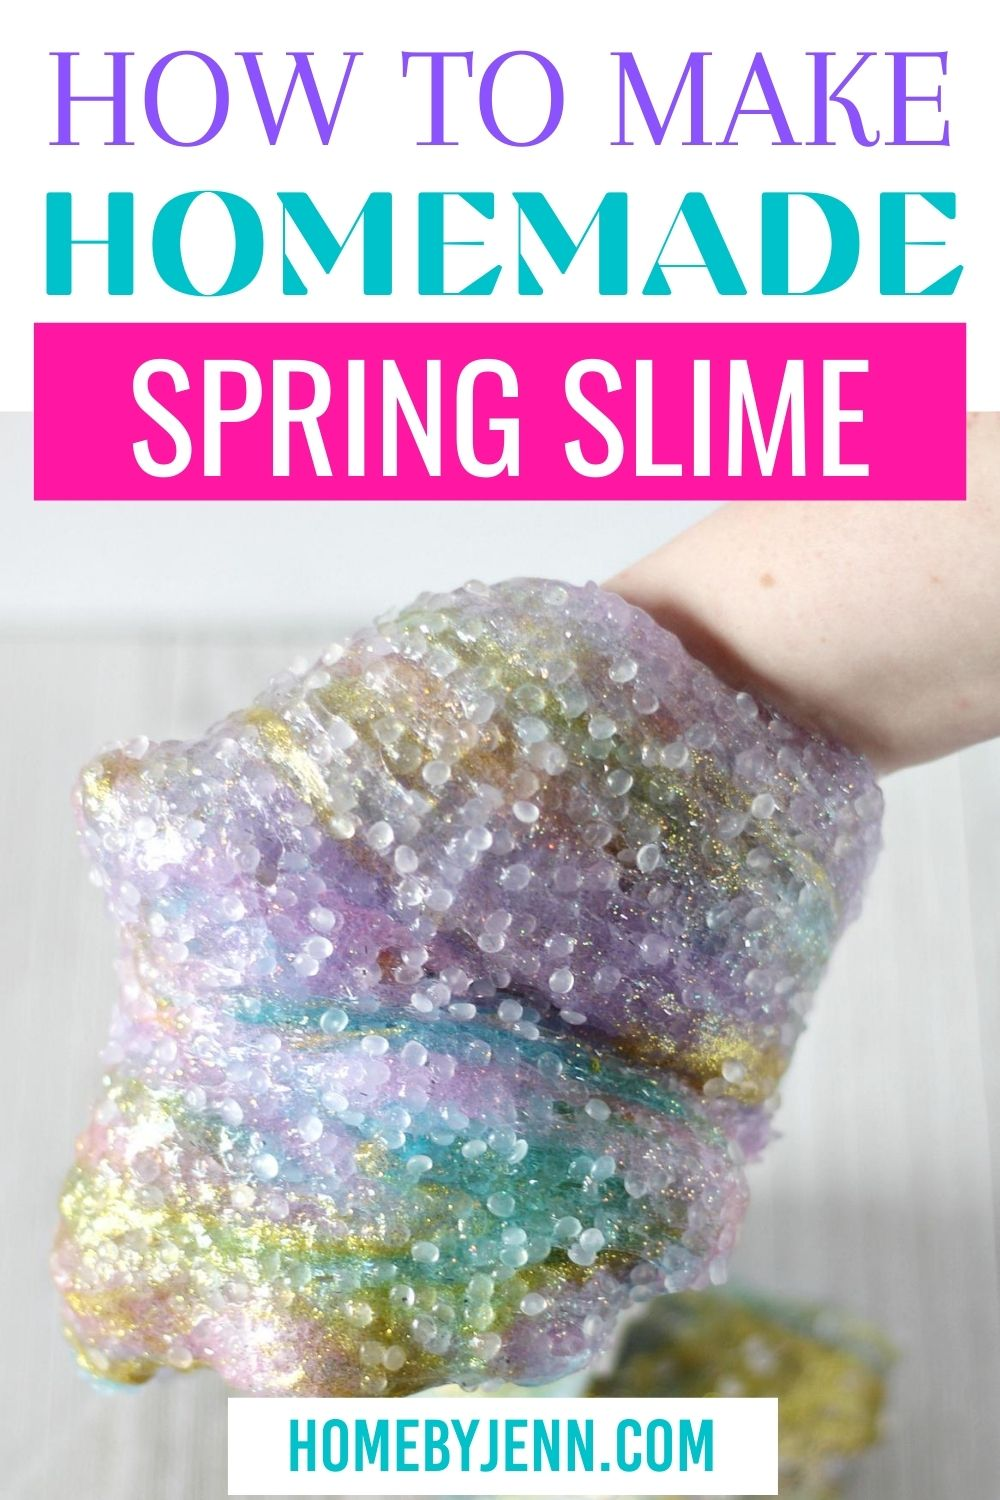 You'll fall in love with this super simple DIY homemade slime. It's such a simple and crafty way to get ready and excited for Spring! #homemade slime #DIY #slimerecipe #Spring via @homebyjenn